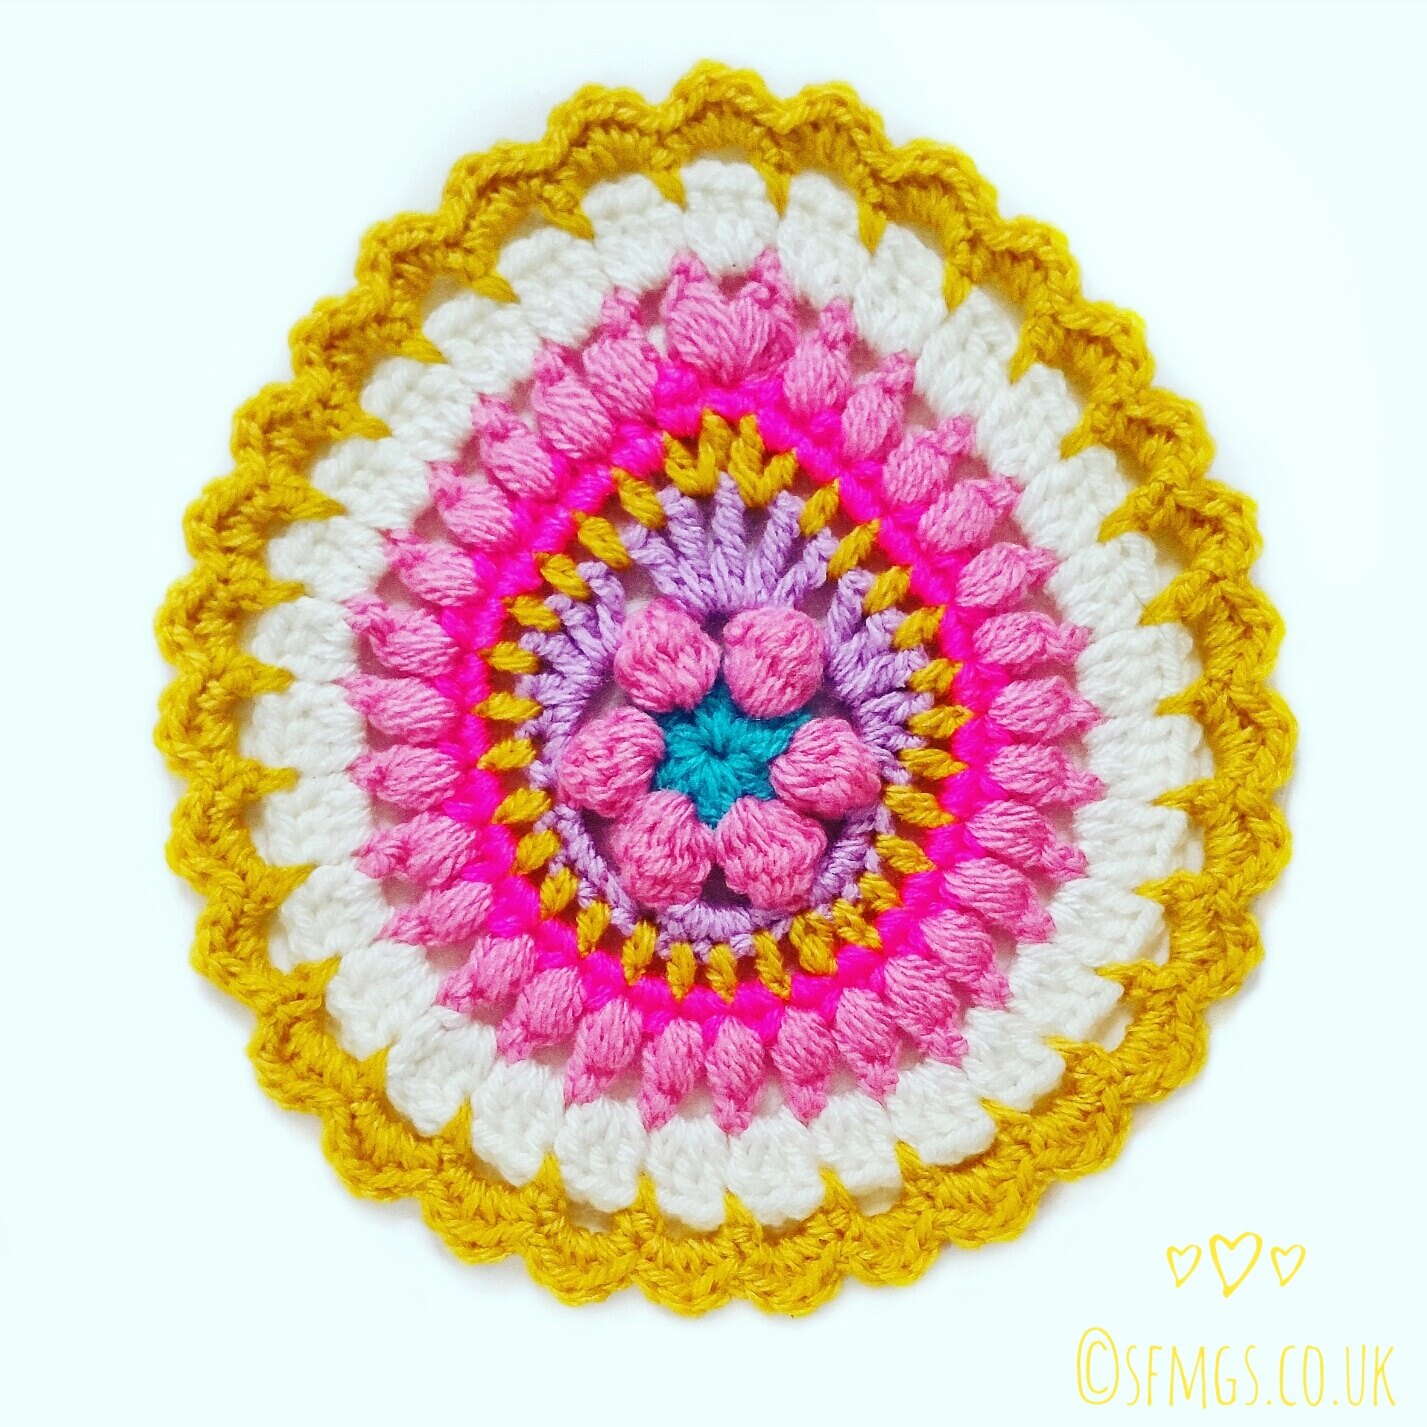 Set Free My Gypsy Soul | a Crochet Craft blog : Easter Egg Mandala ...